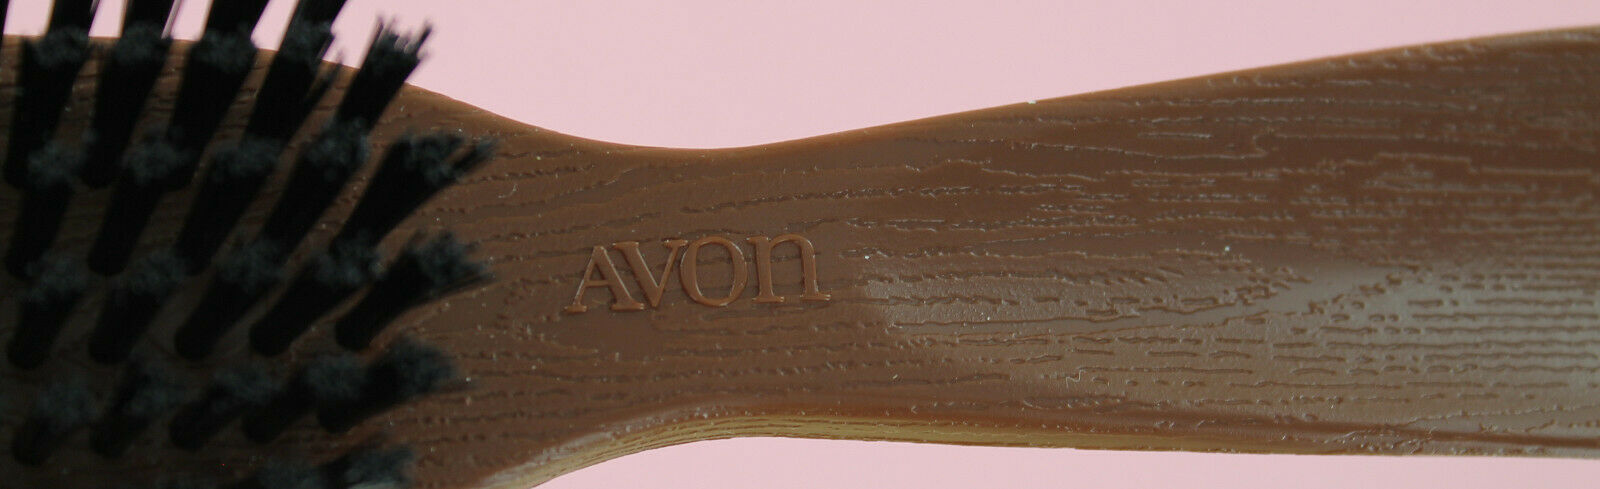 New Vintage Avon Clothes Brush Valet with Shoe Horn